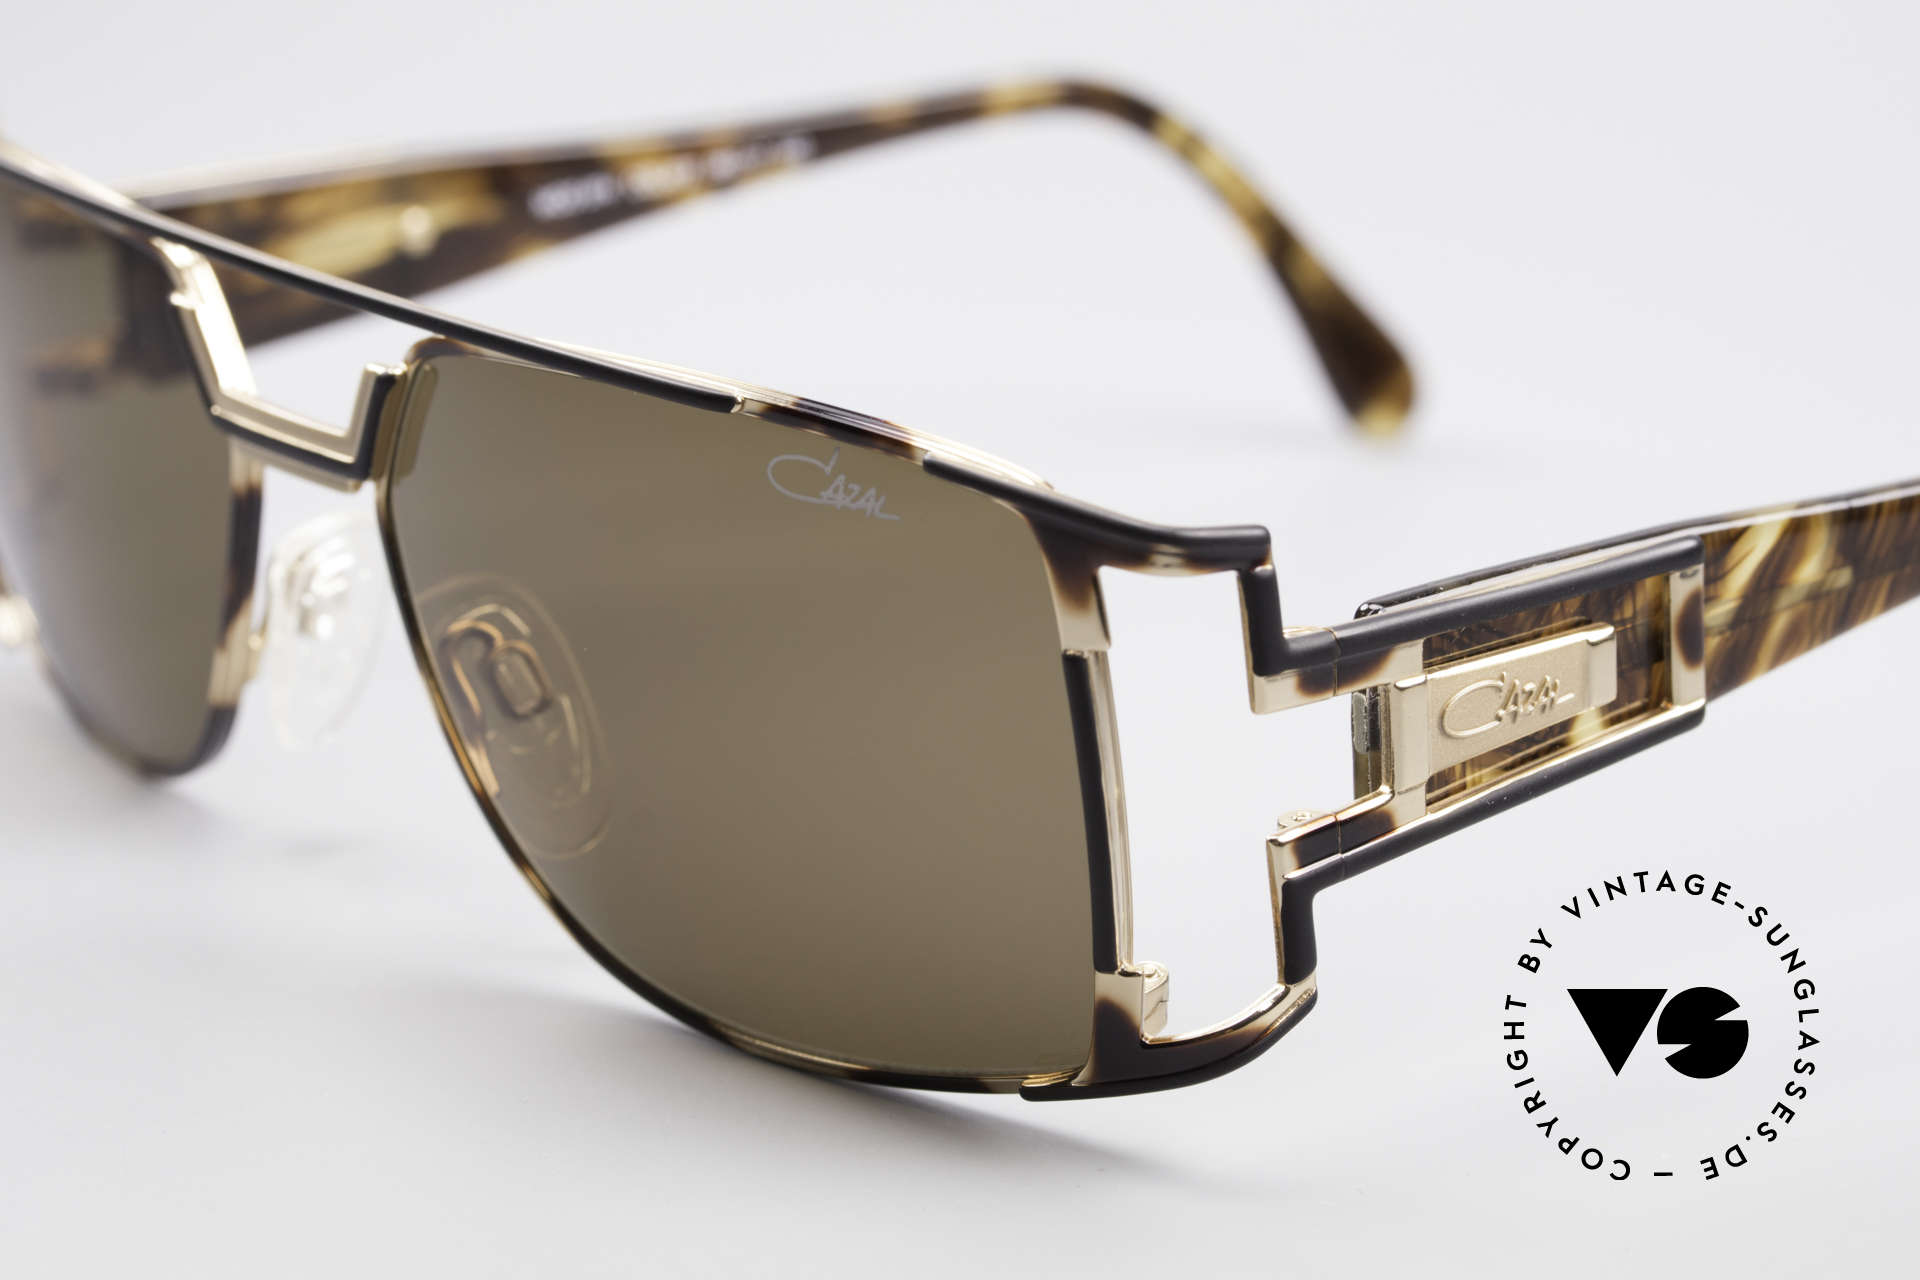 Cazal 974 Designer Shades Ladies Gents, tangible (made in Germany) premium quality; 100% UV, Made for Men and Women